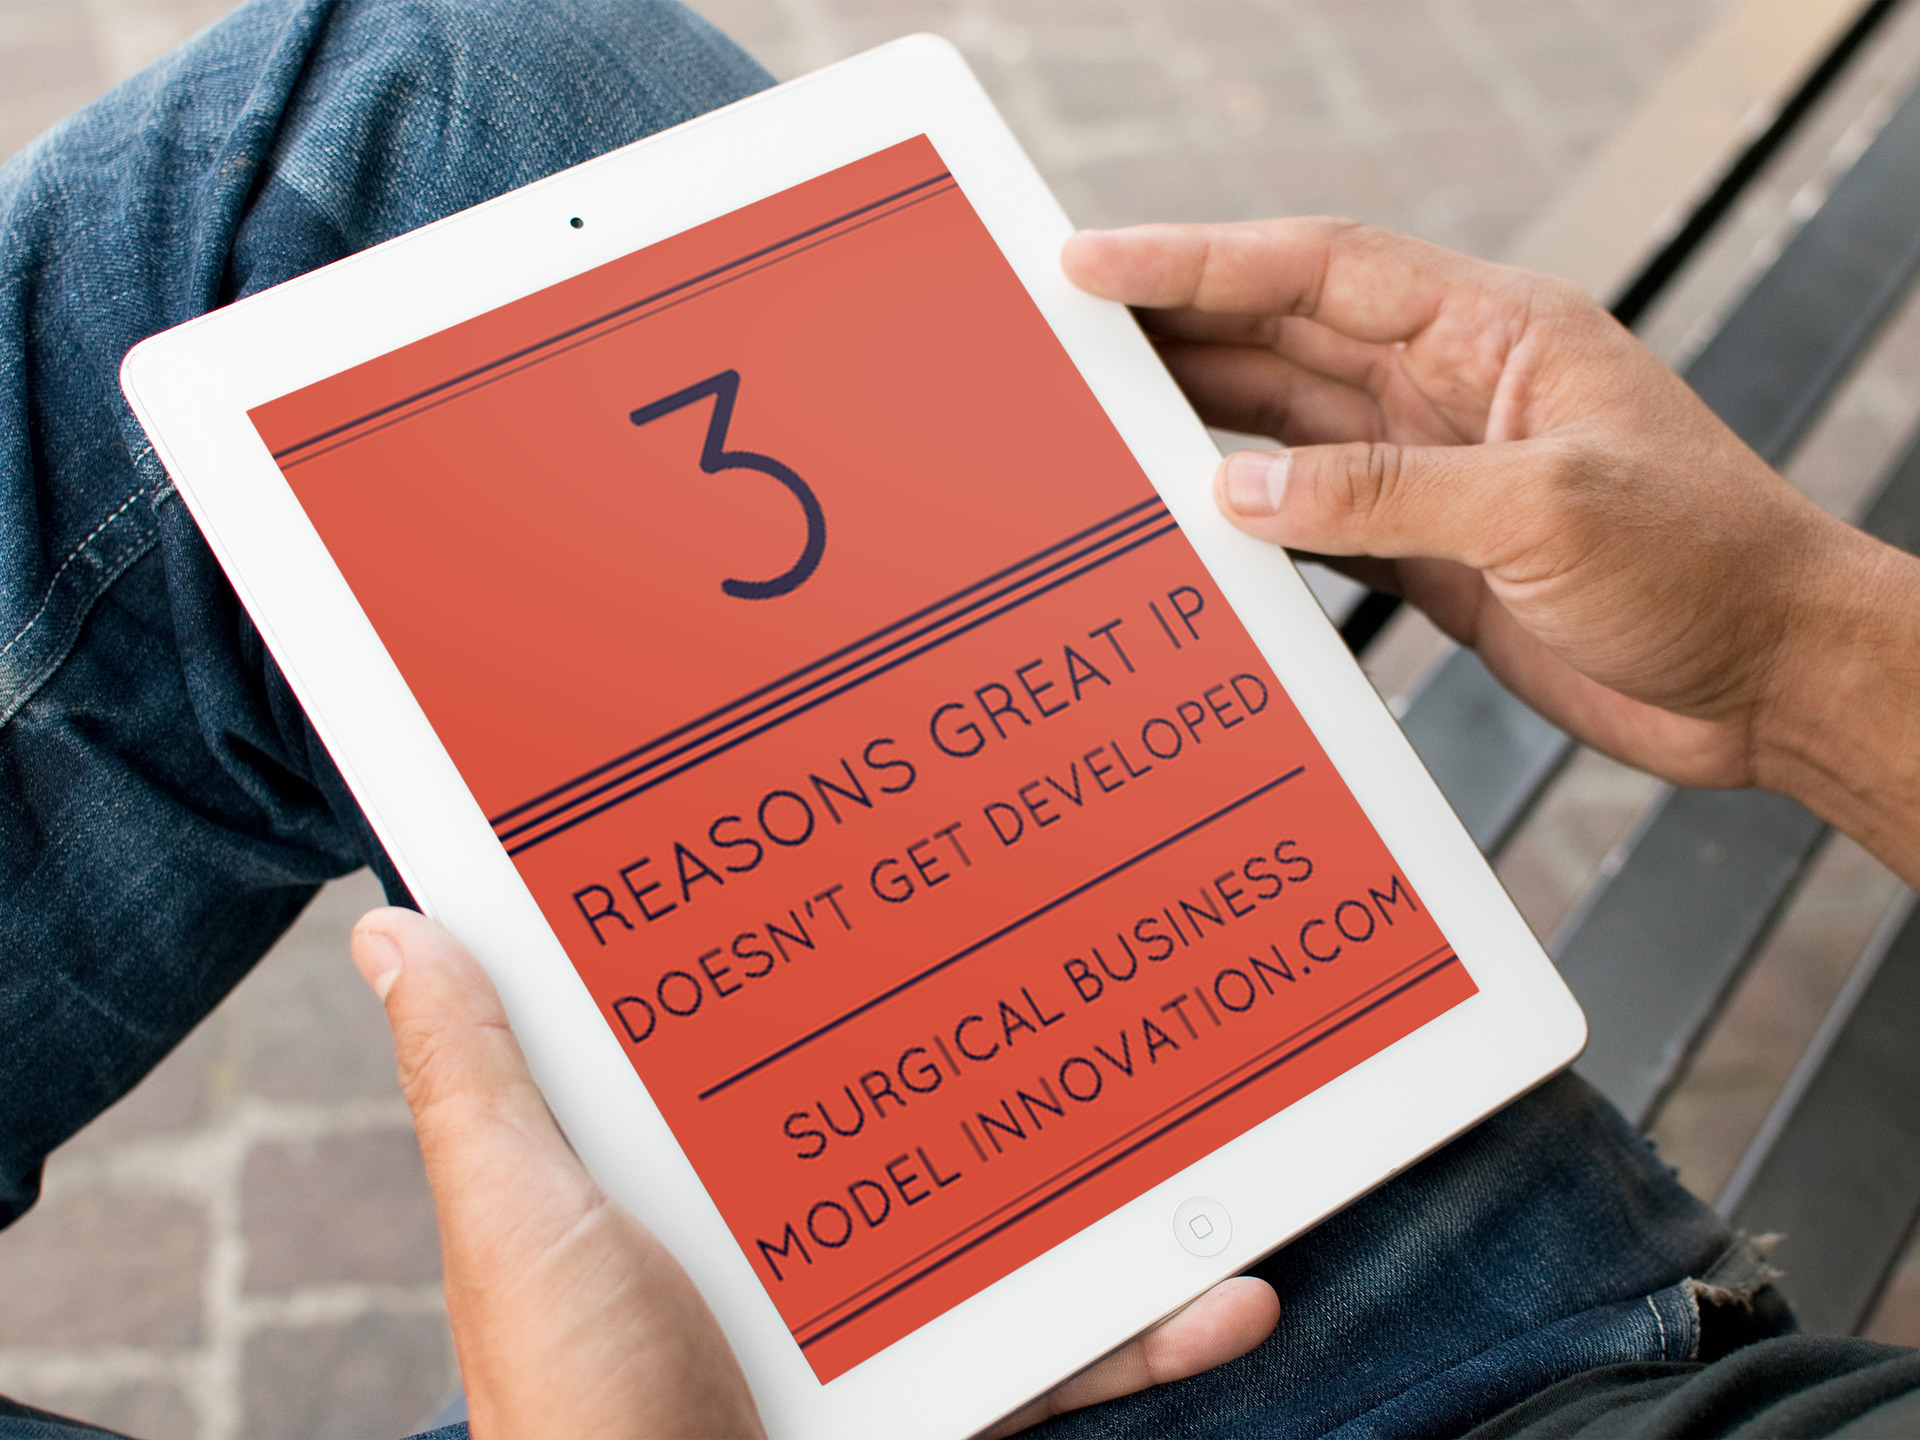 3 Reasons Why Great IP Doesn't Get Developed – It's NOT Always About The Money